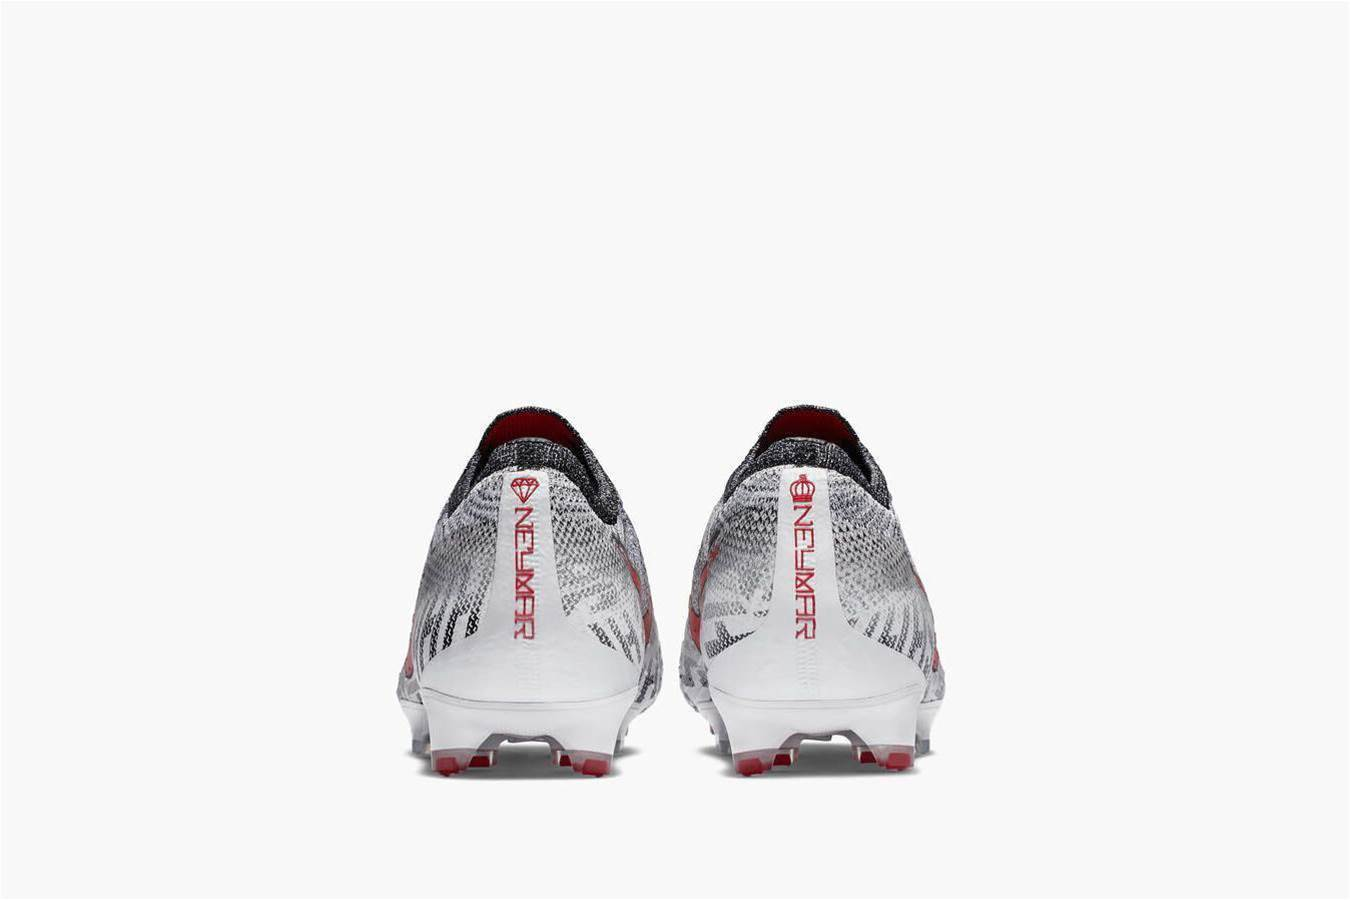 reputable site 9387b ed51b The Nike Mercurial Vapor 360 NJR Silencio are available now on nike.com and  selected retailers.